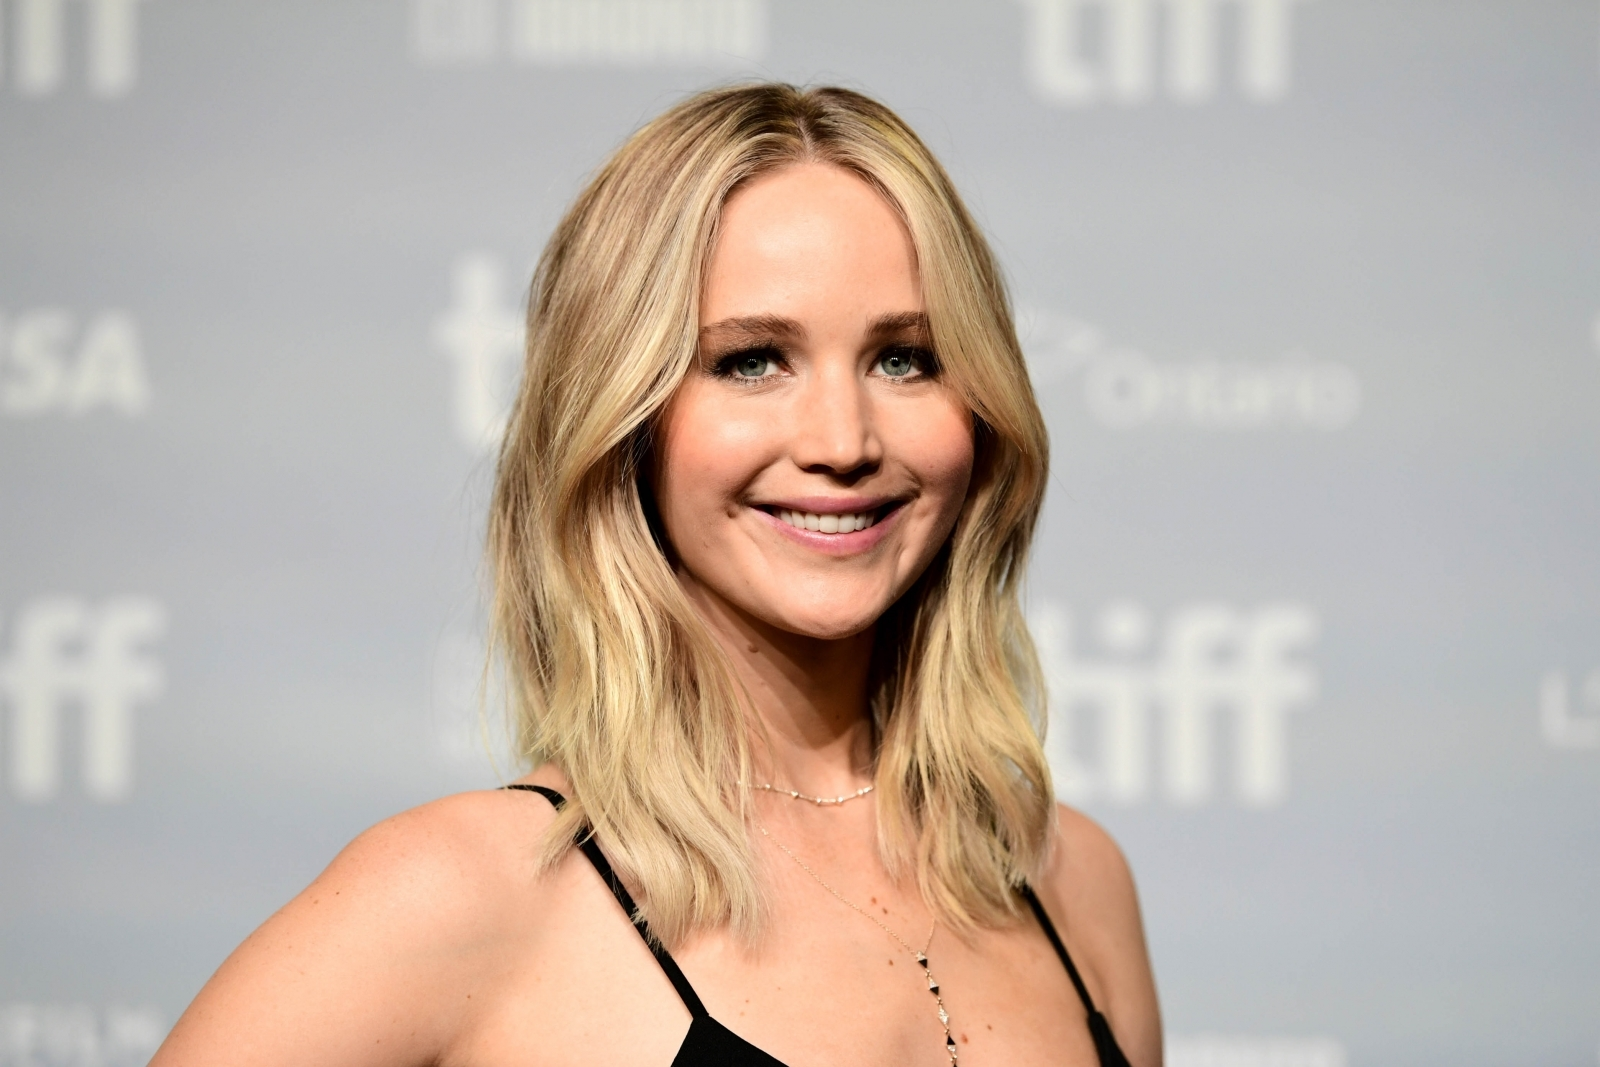 Jennifer Lawrence thinks her boyfriend Darren Aronofsky is